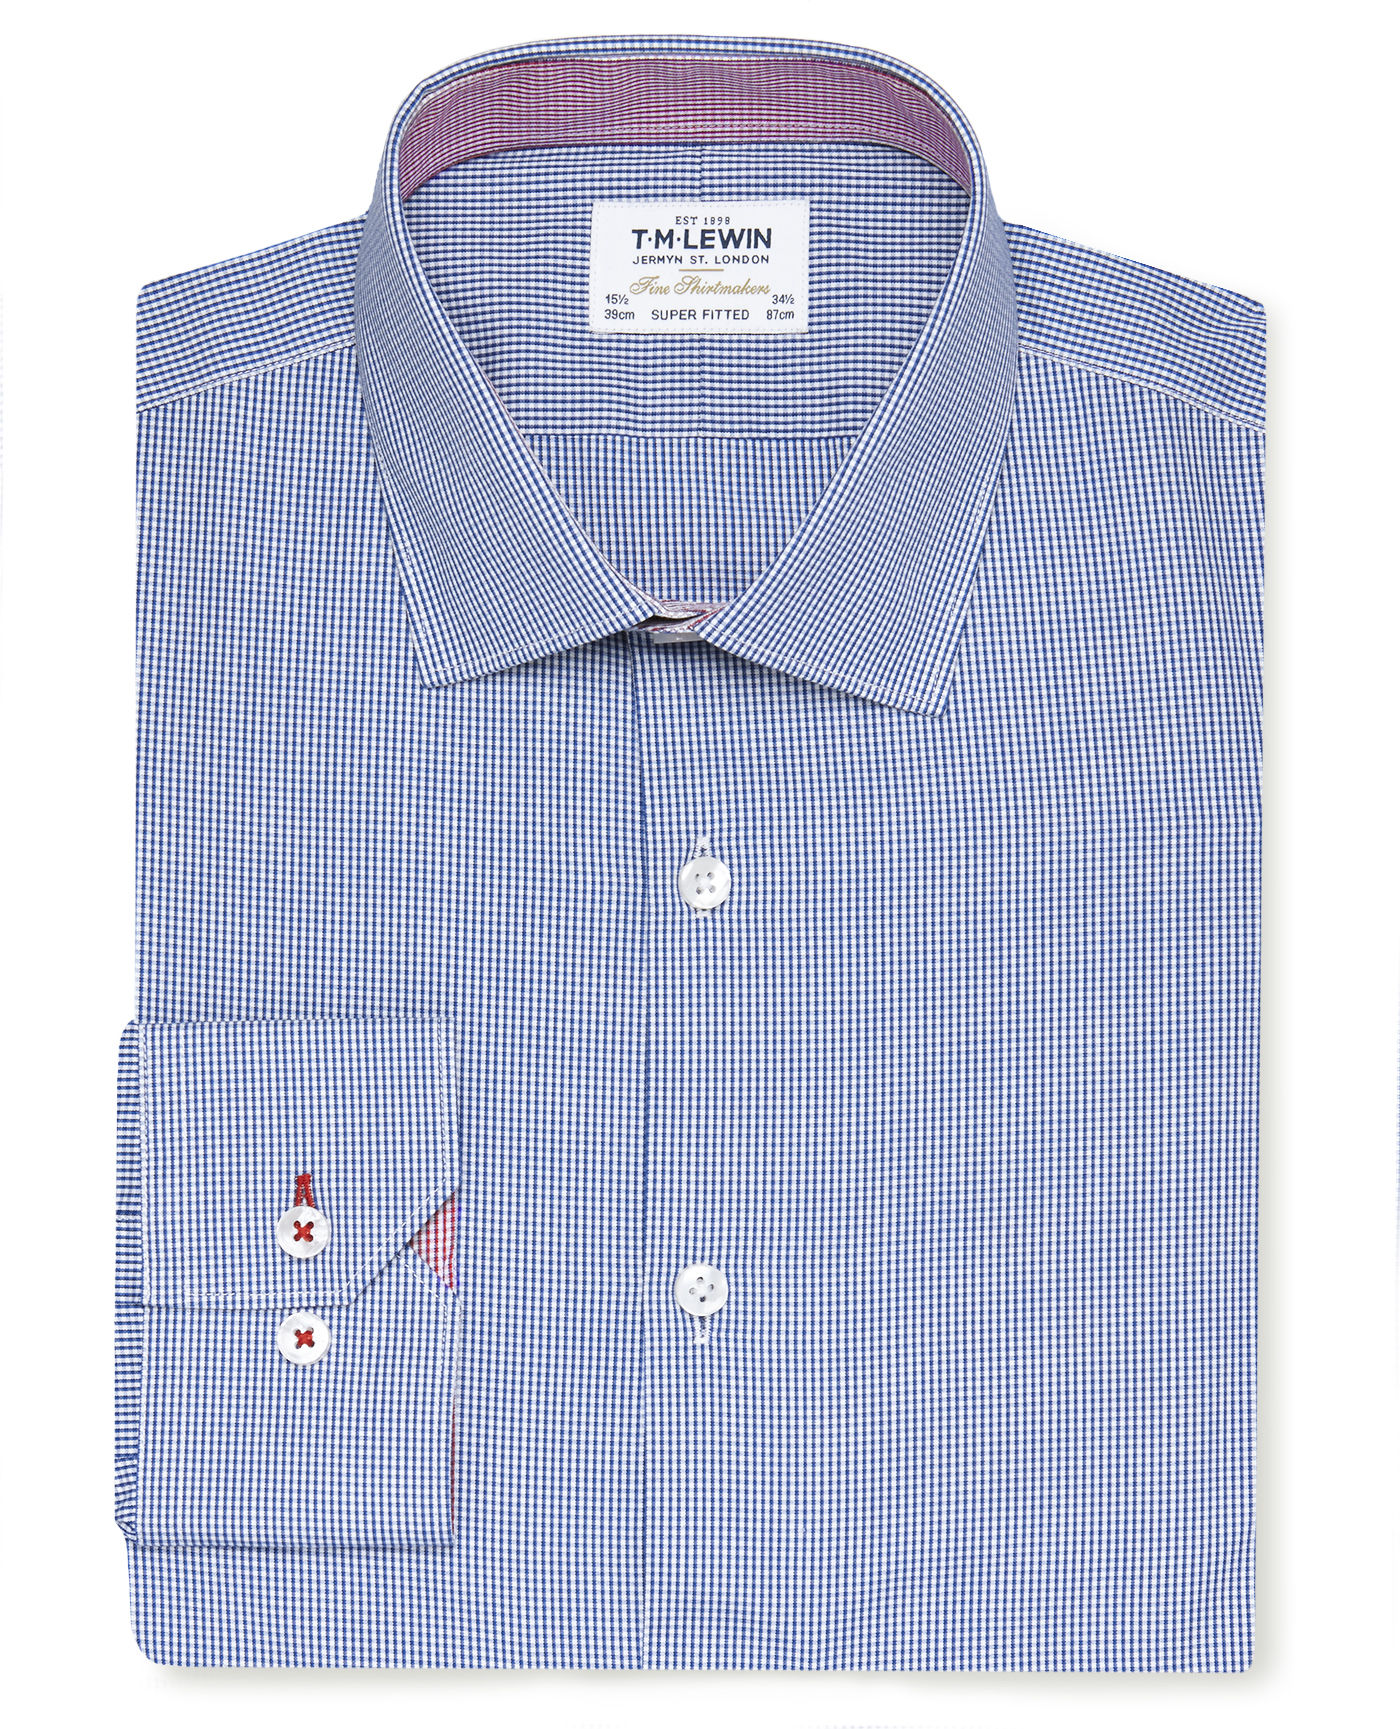 T.M.Lewin Premium Super Fitted Navy Gingham Shirt with Contrast Trim - Button Cuff